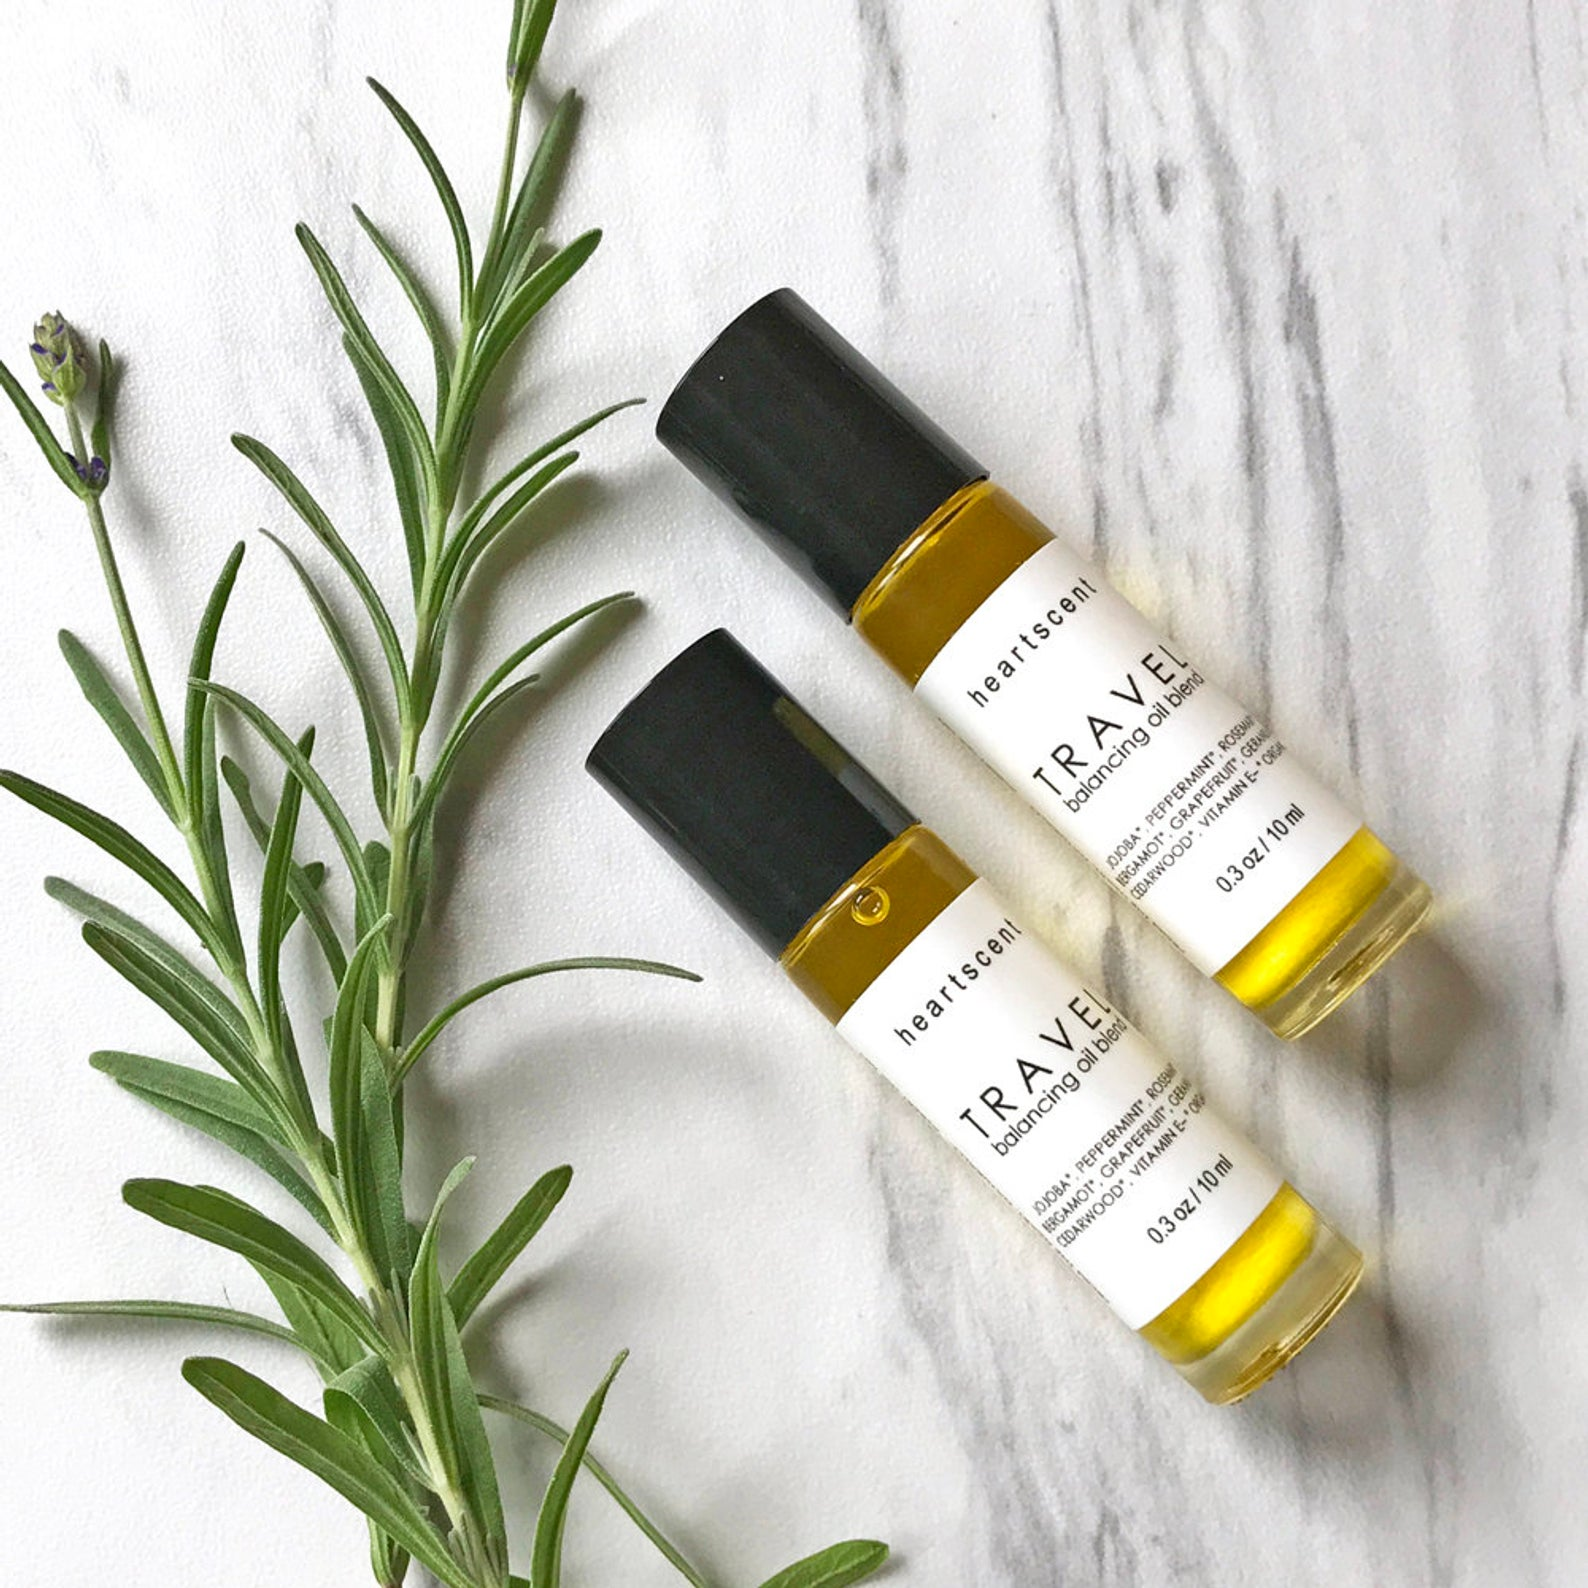 Travel Jet Lag Aromatherapy Roller By Heartscent